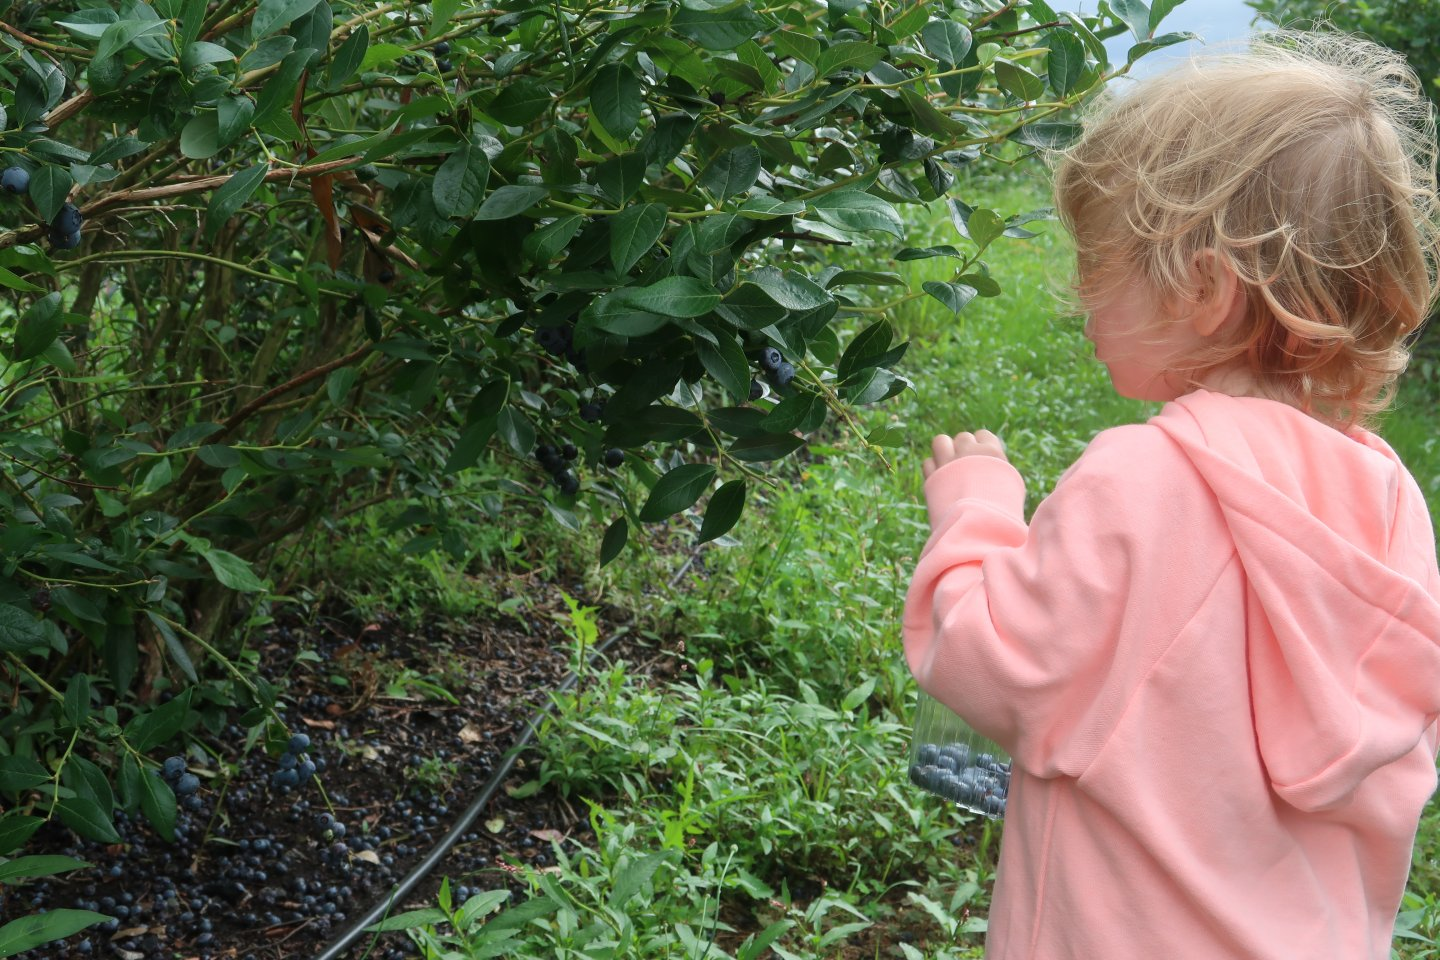 M, our three year old daughter, picks blueberries from a bush, with her back to the camera.